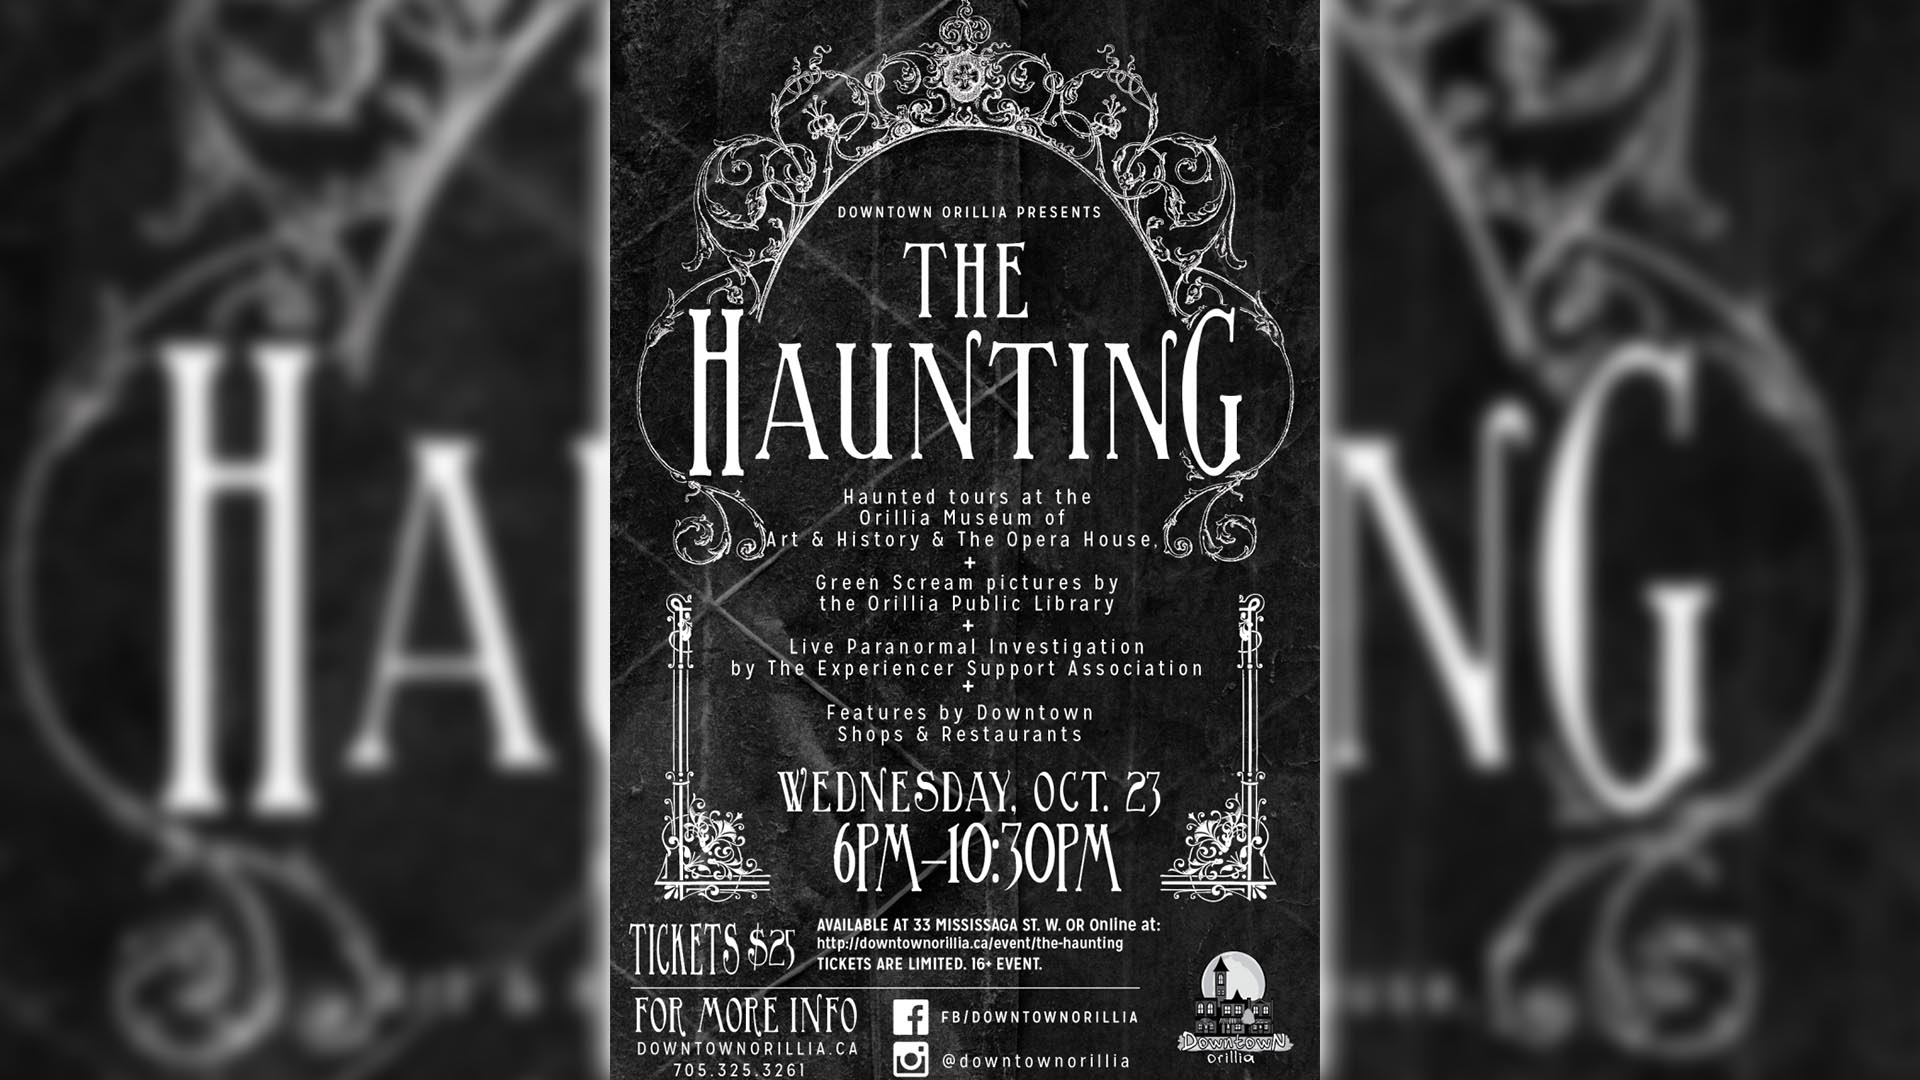 haunting - October events you don't want to miss!